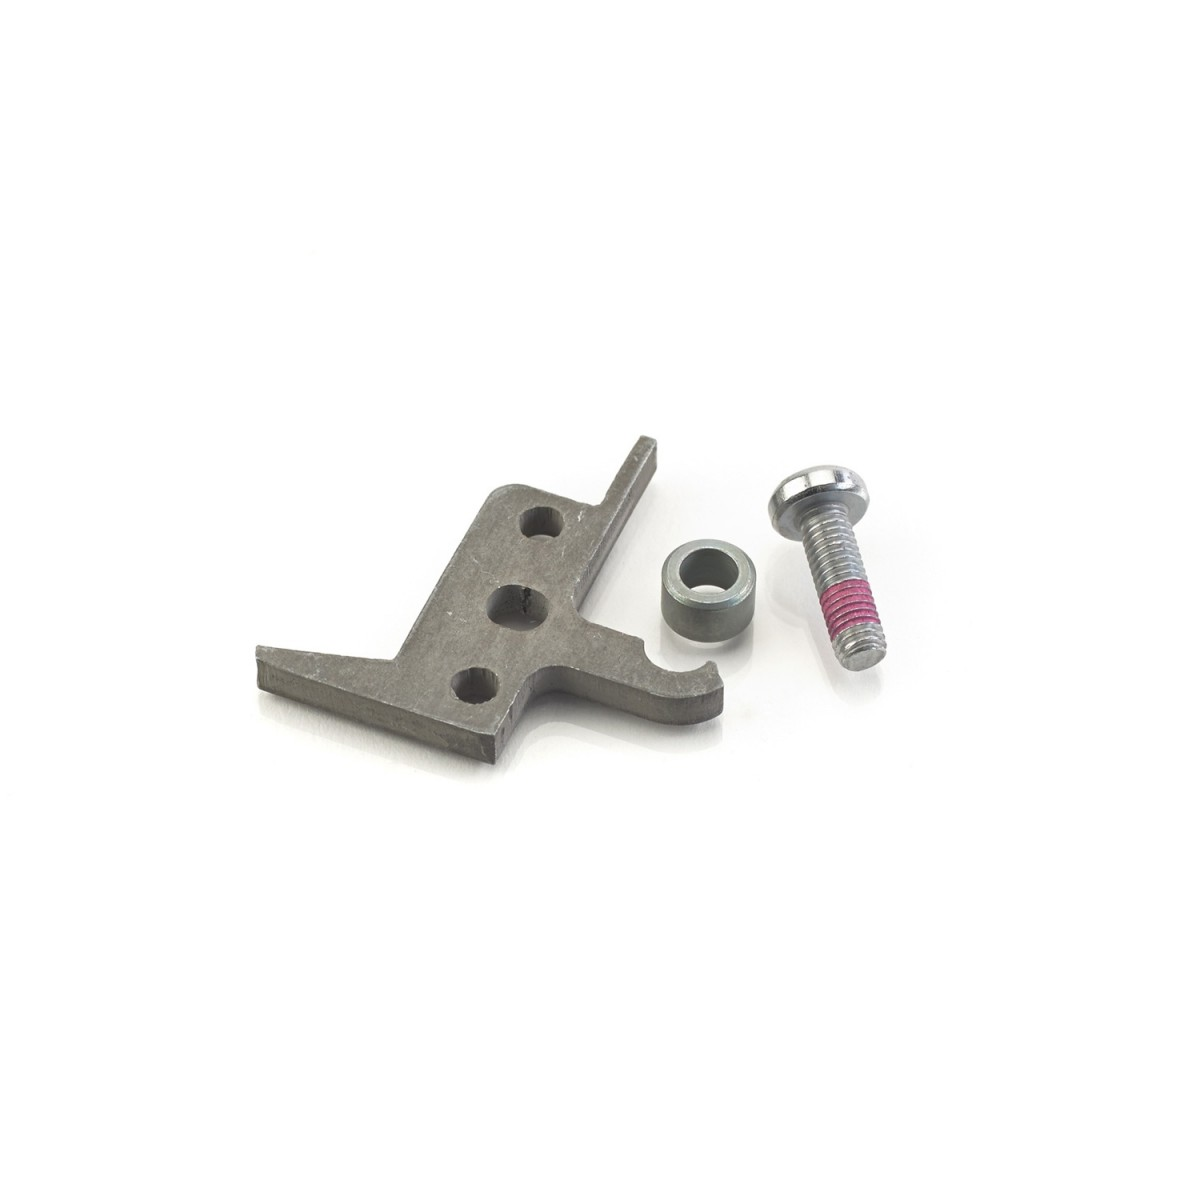 prestaciones-triumph-restrictor-bracket-kit-72-kw